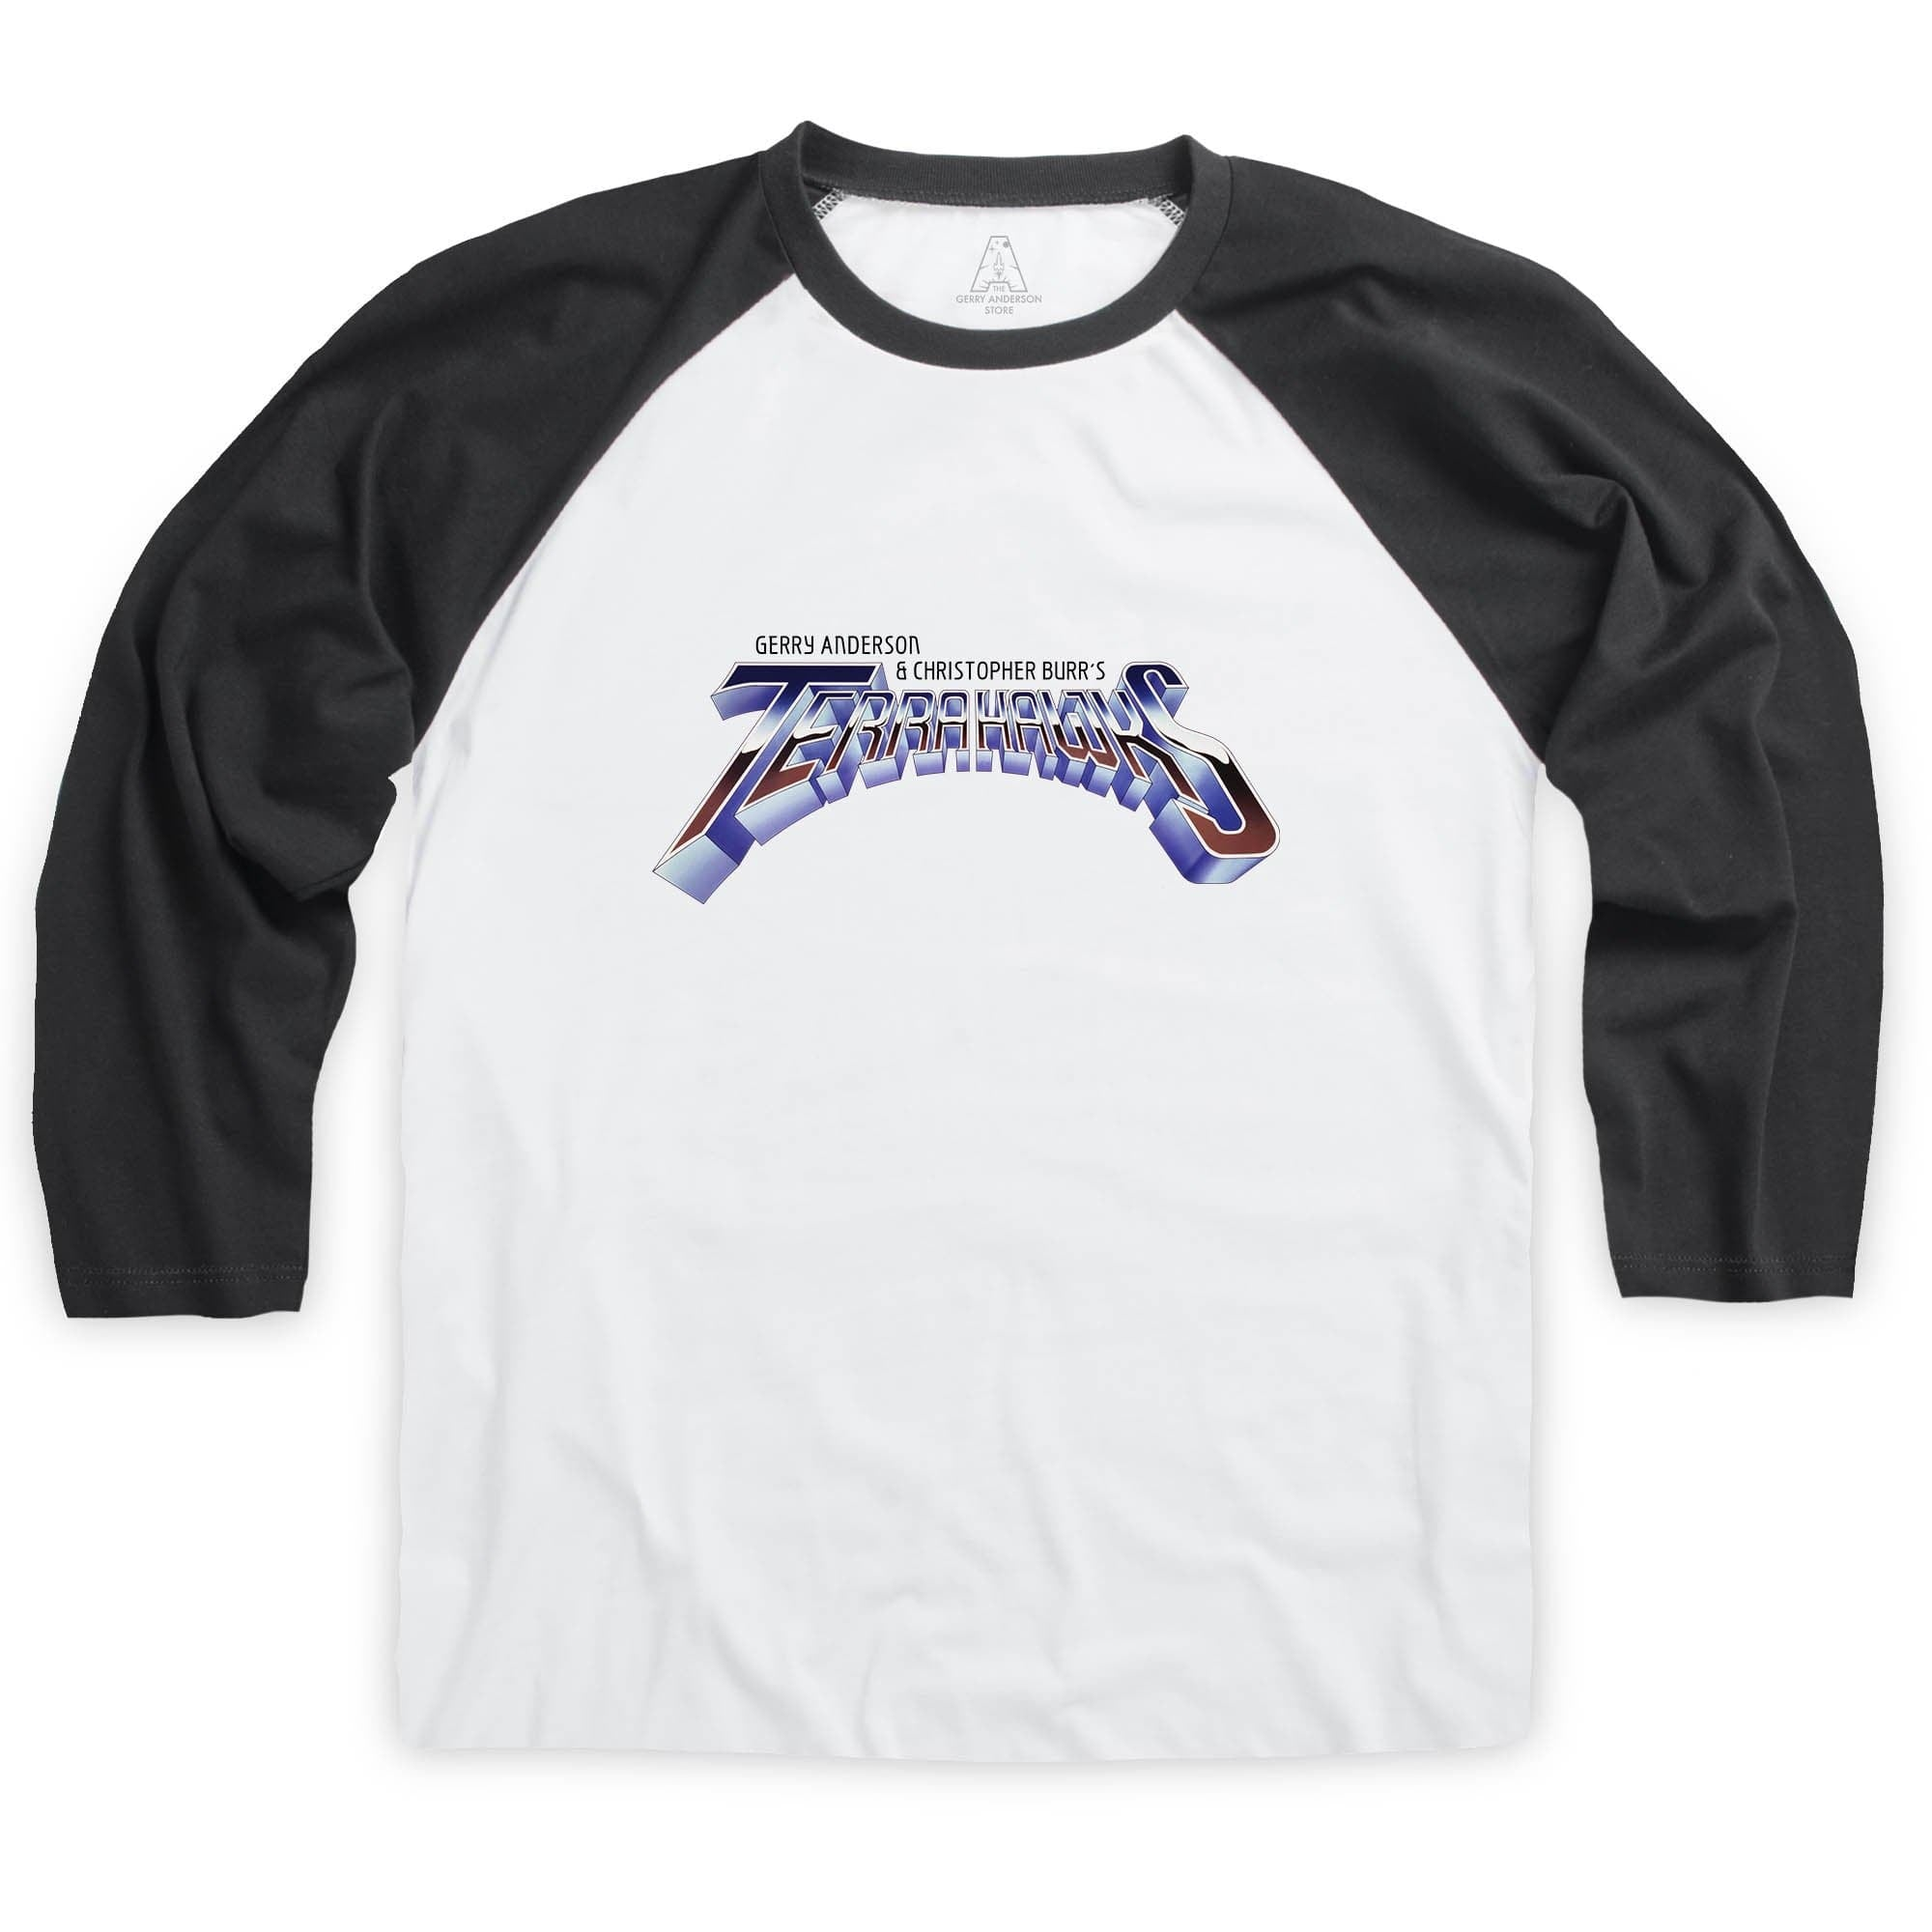 Terrahawks Logo Baseball T-Shirt [Official & Exclusive] - The Gerry Anderson Store